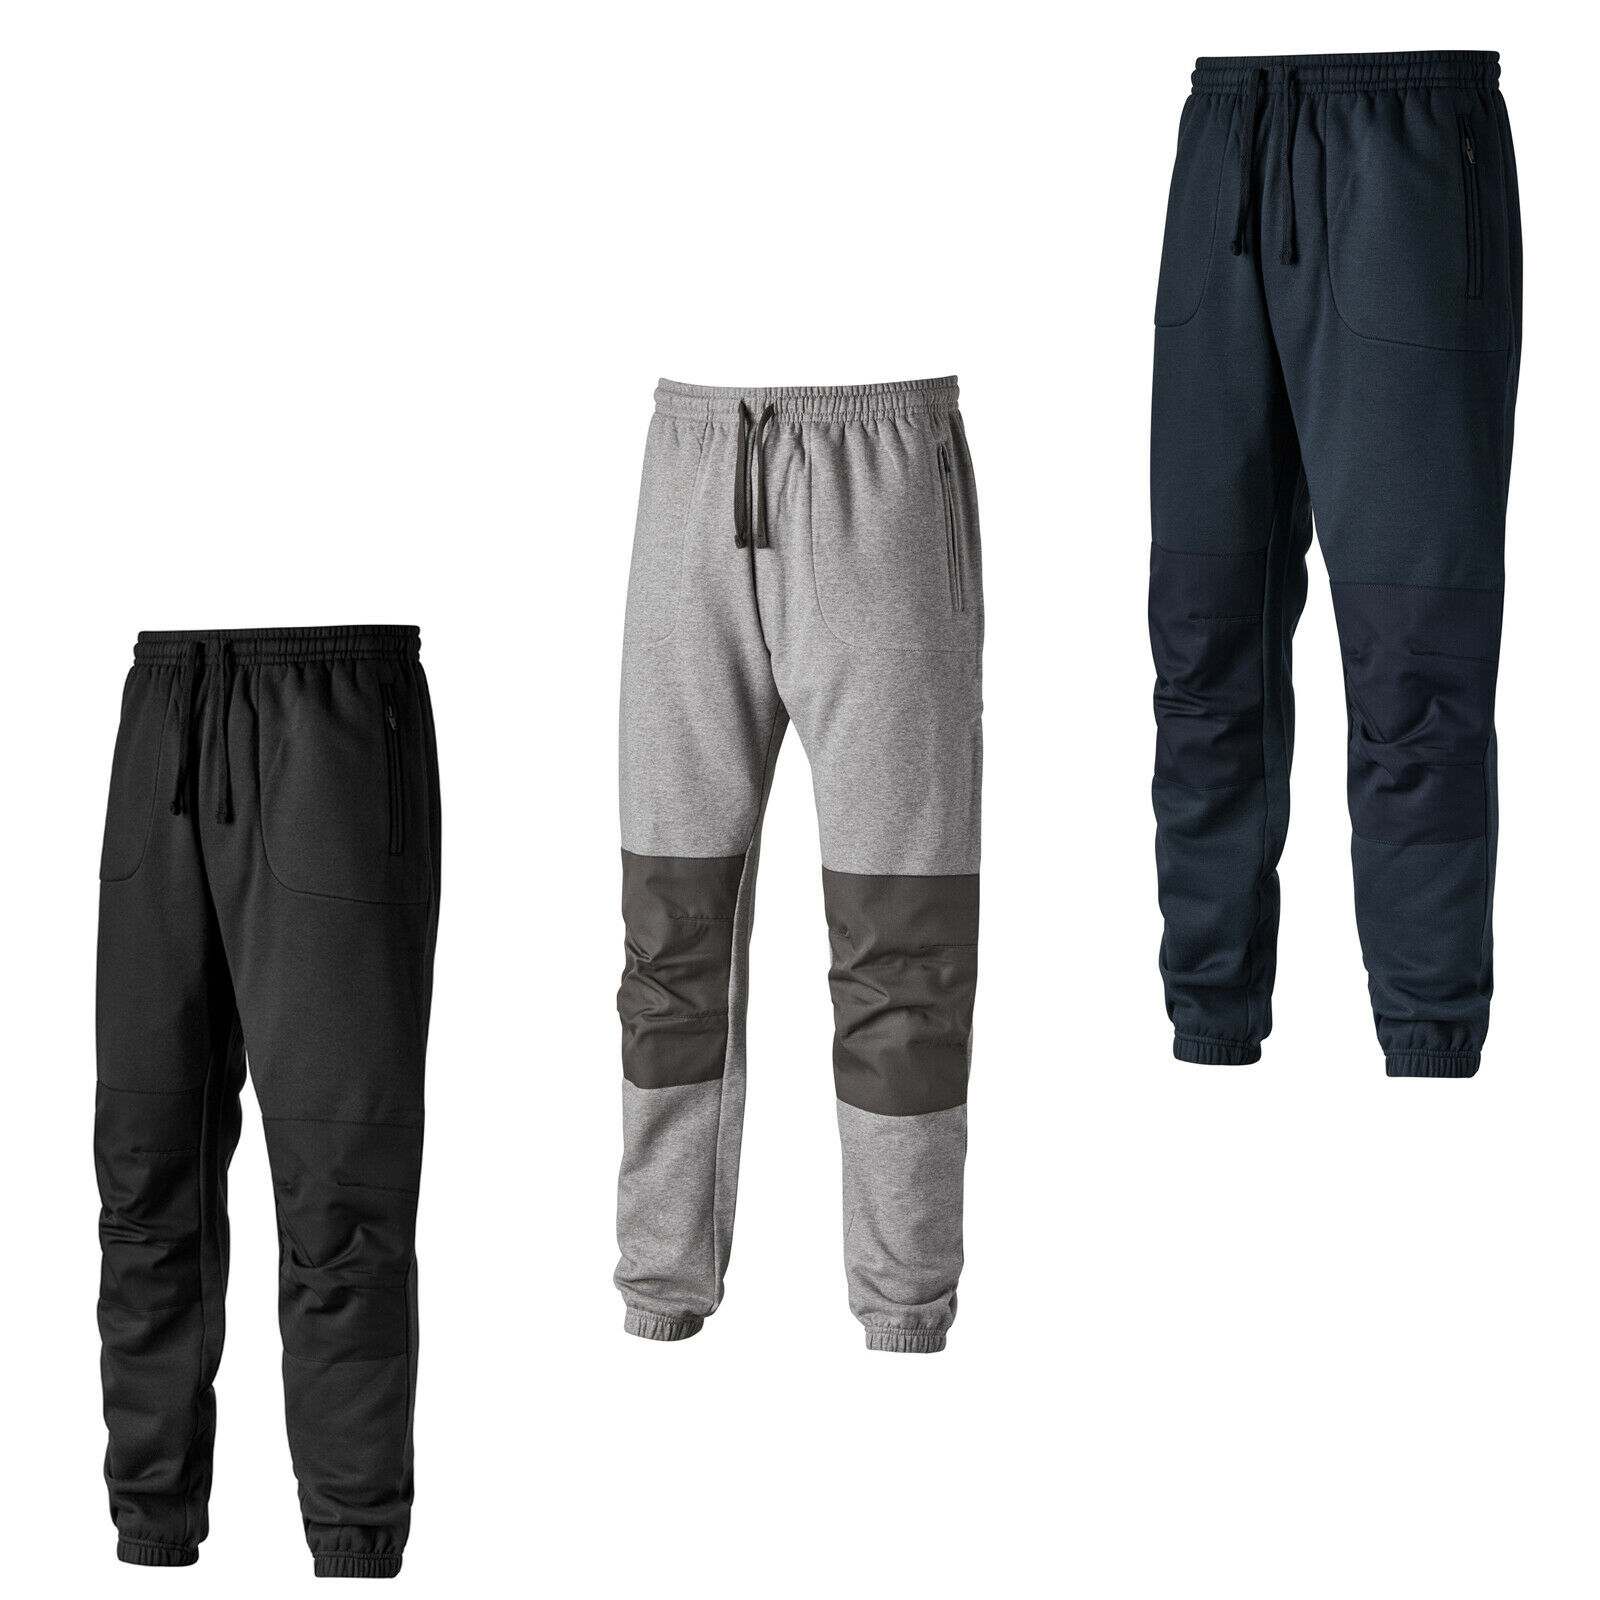 free delivery 2020 full range of specifications Details about Dickies Mens Joggers Workpants Non Safety Sweatpants Casual  Trousers TR2008